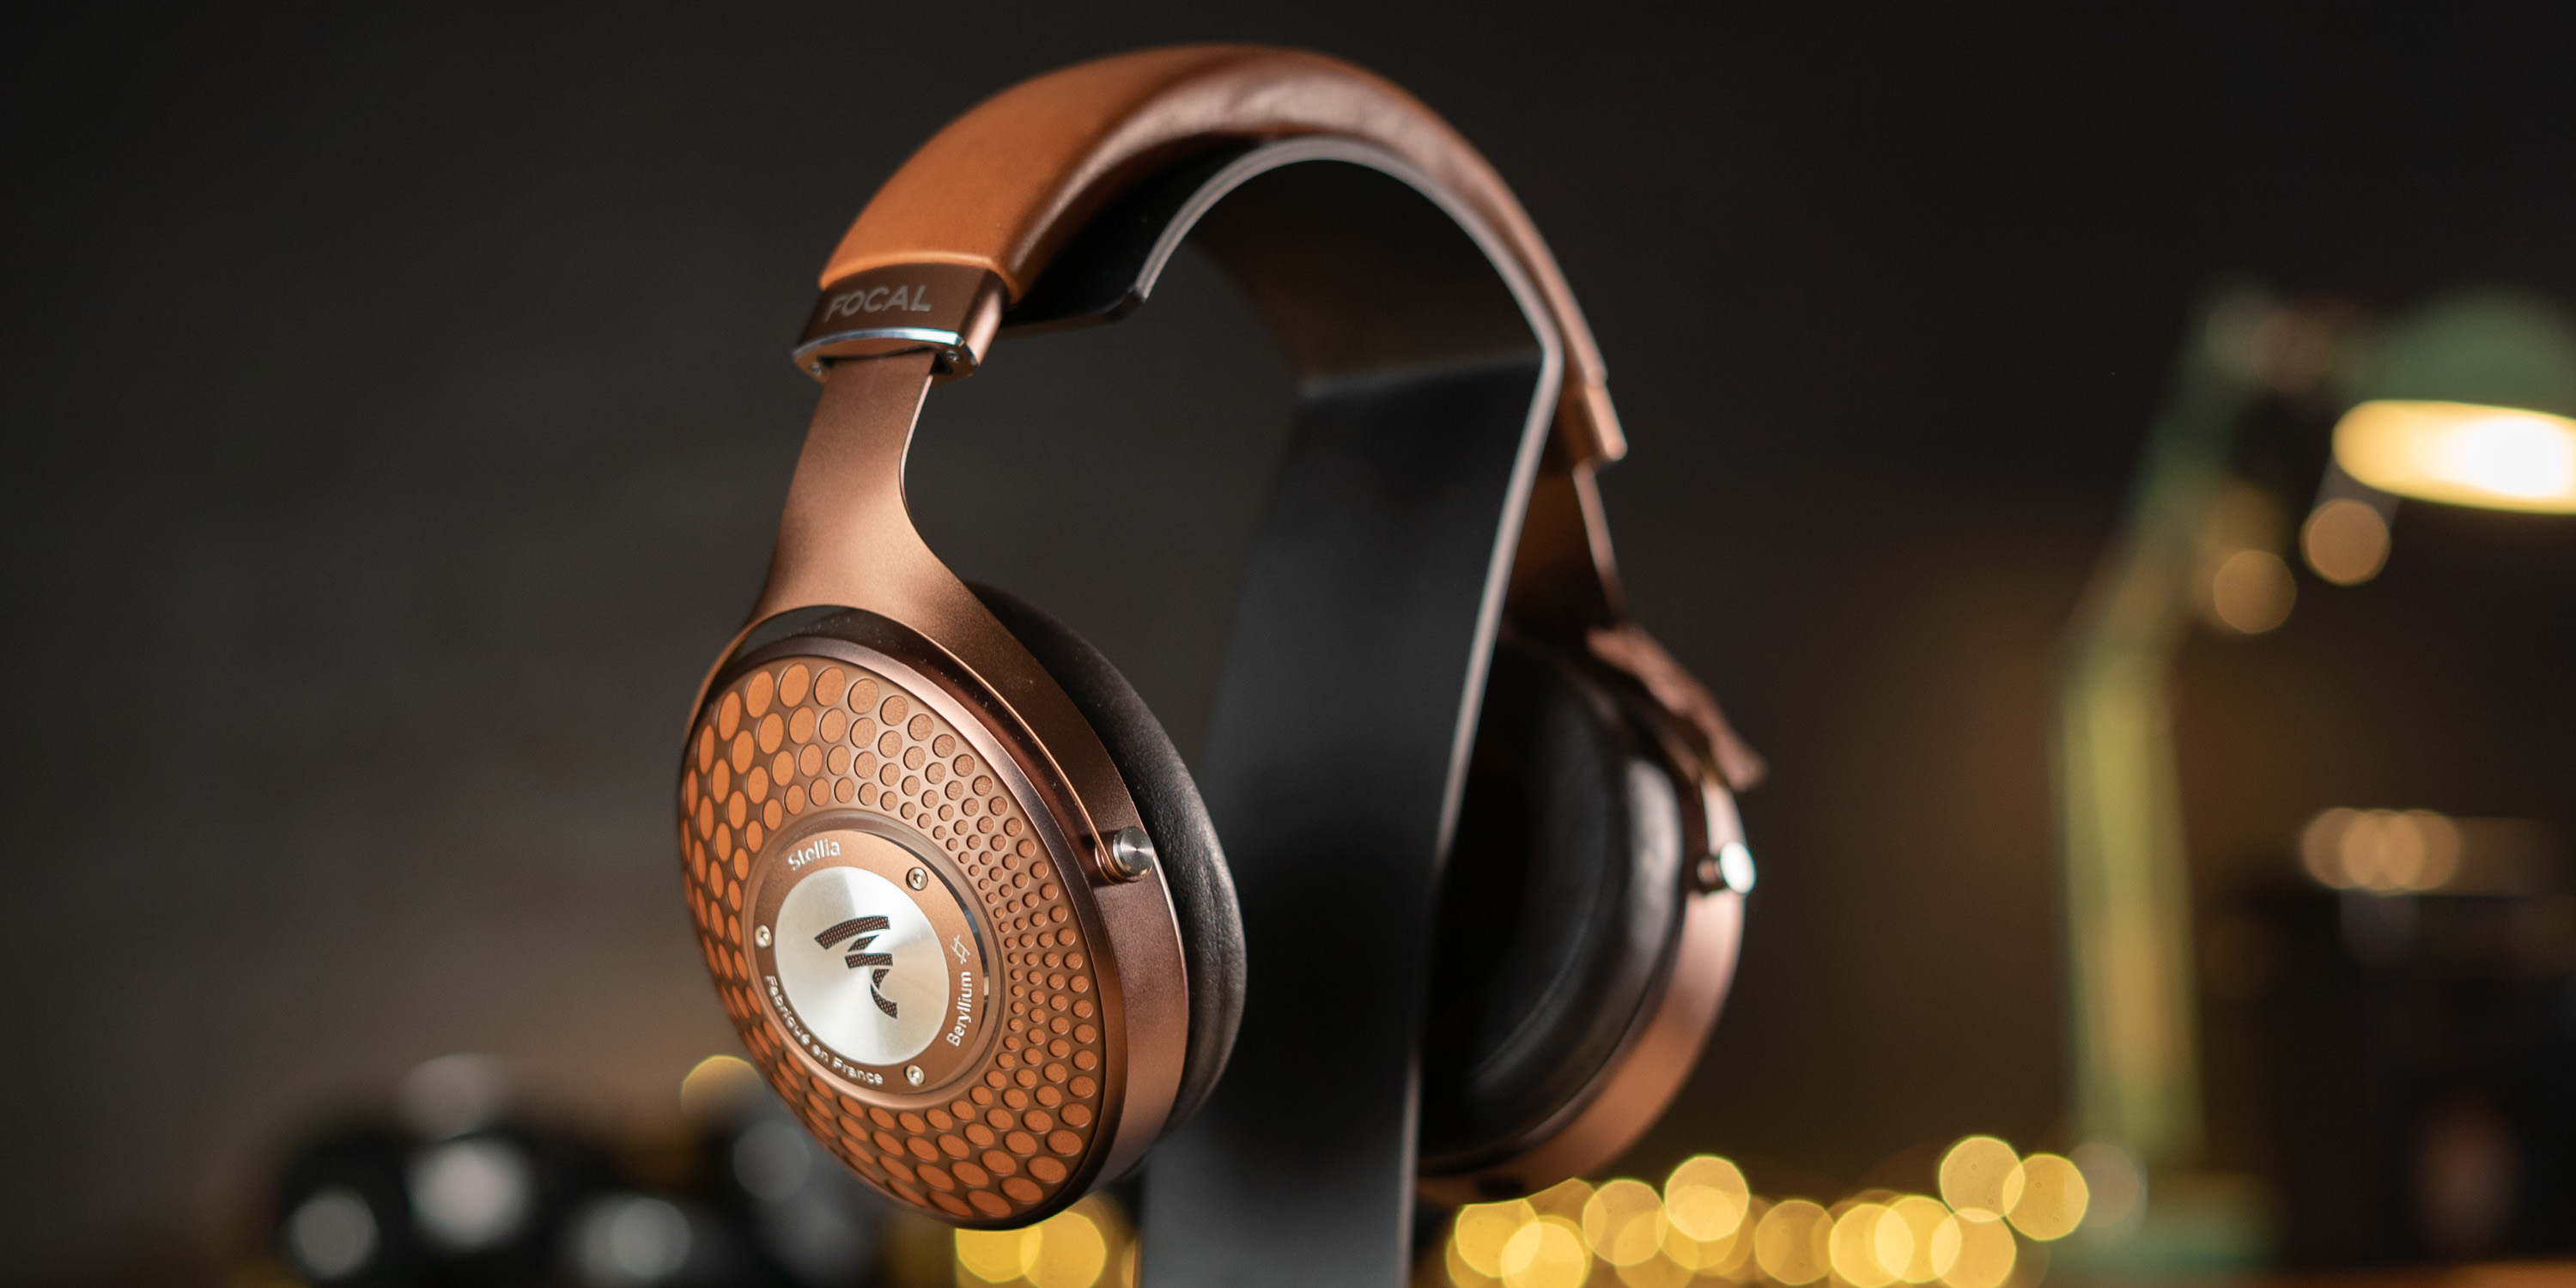 Stellia Hi-Fi Headphones from Focal